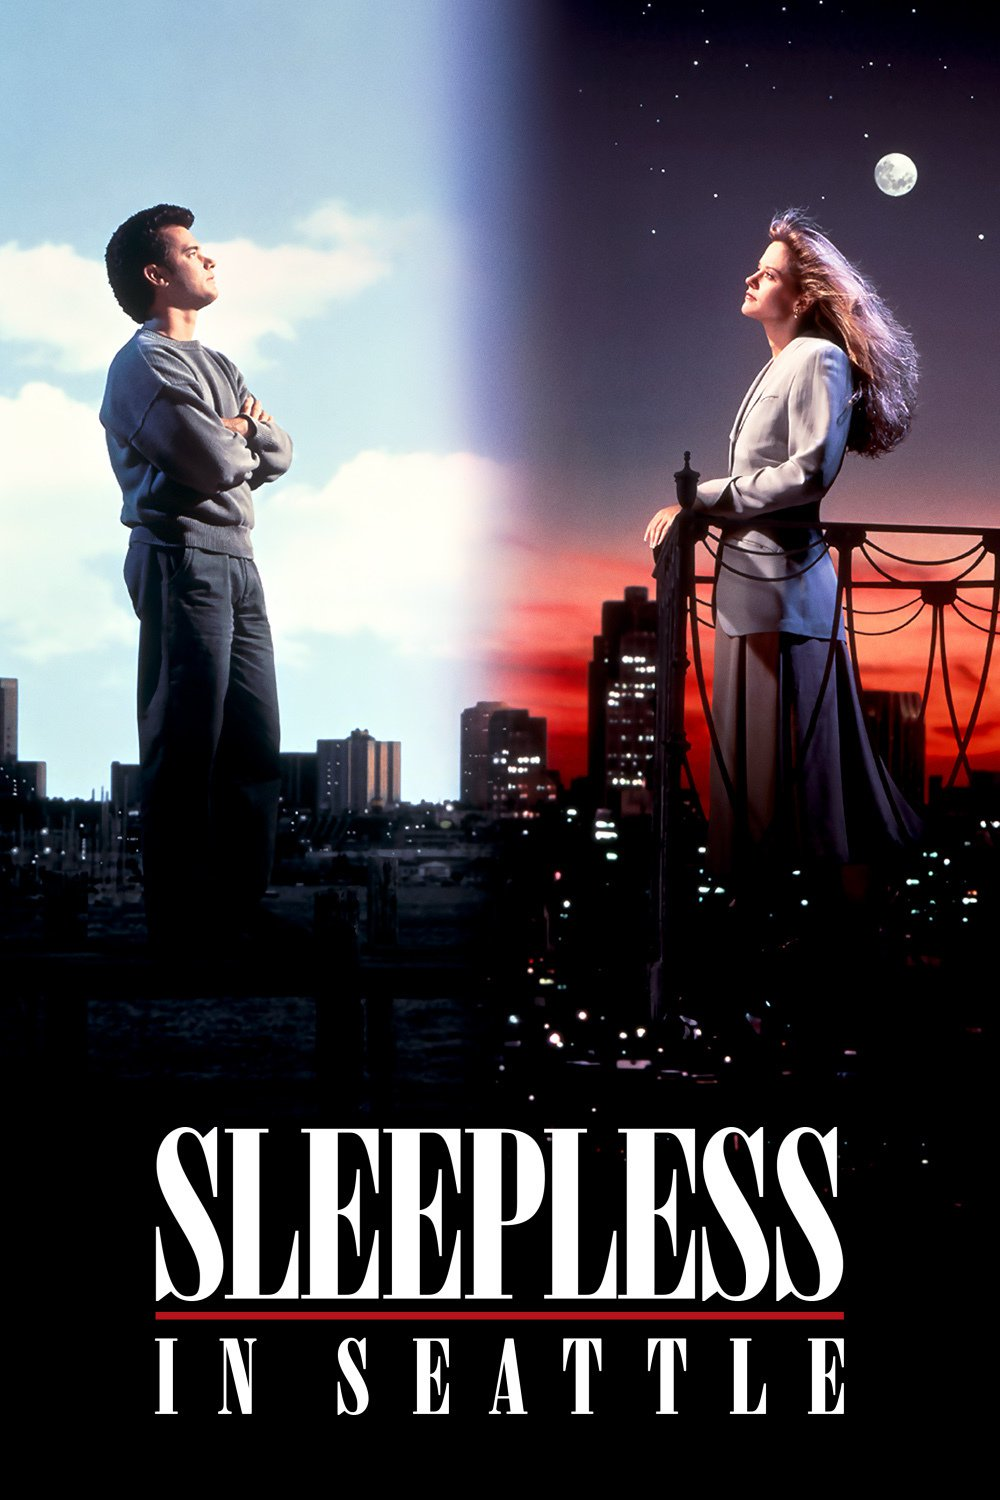 Poster for Sleepless in Seattle